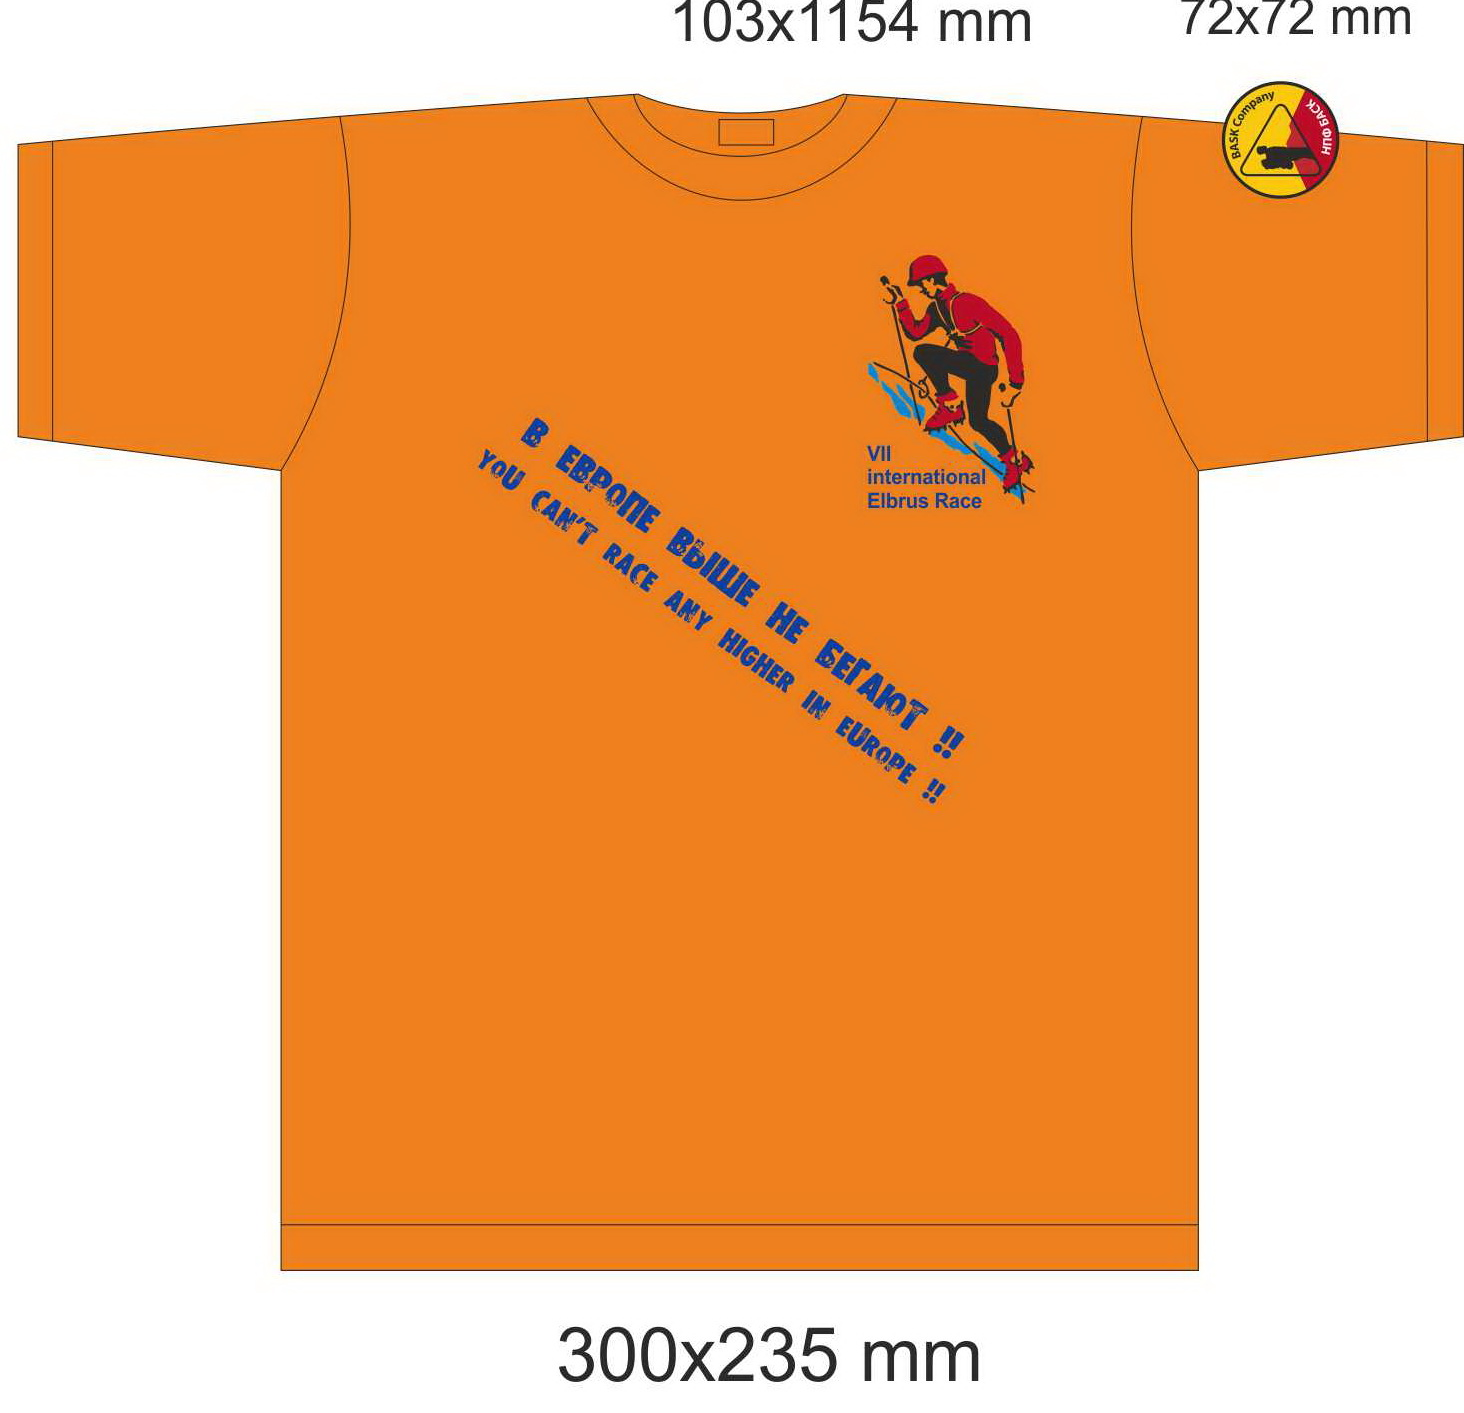 T-shirt_Elbrus_Race_01